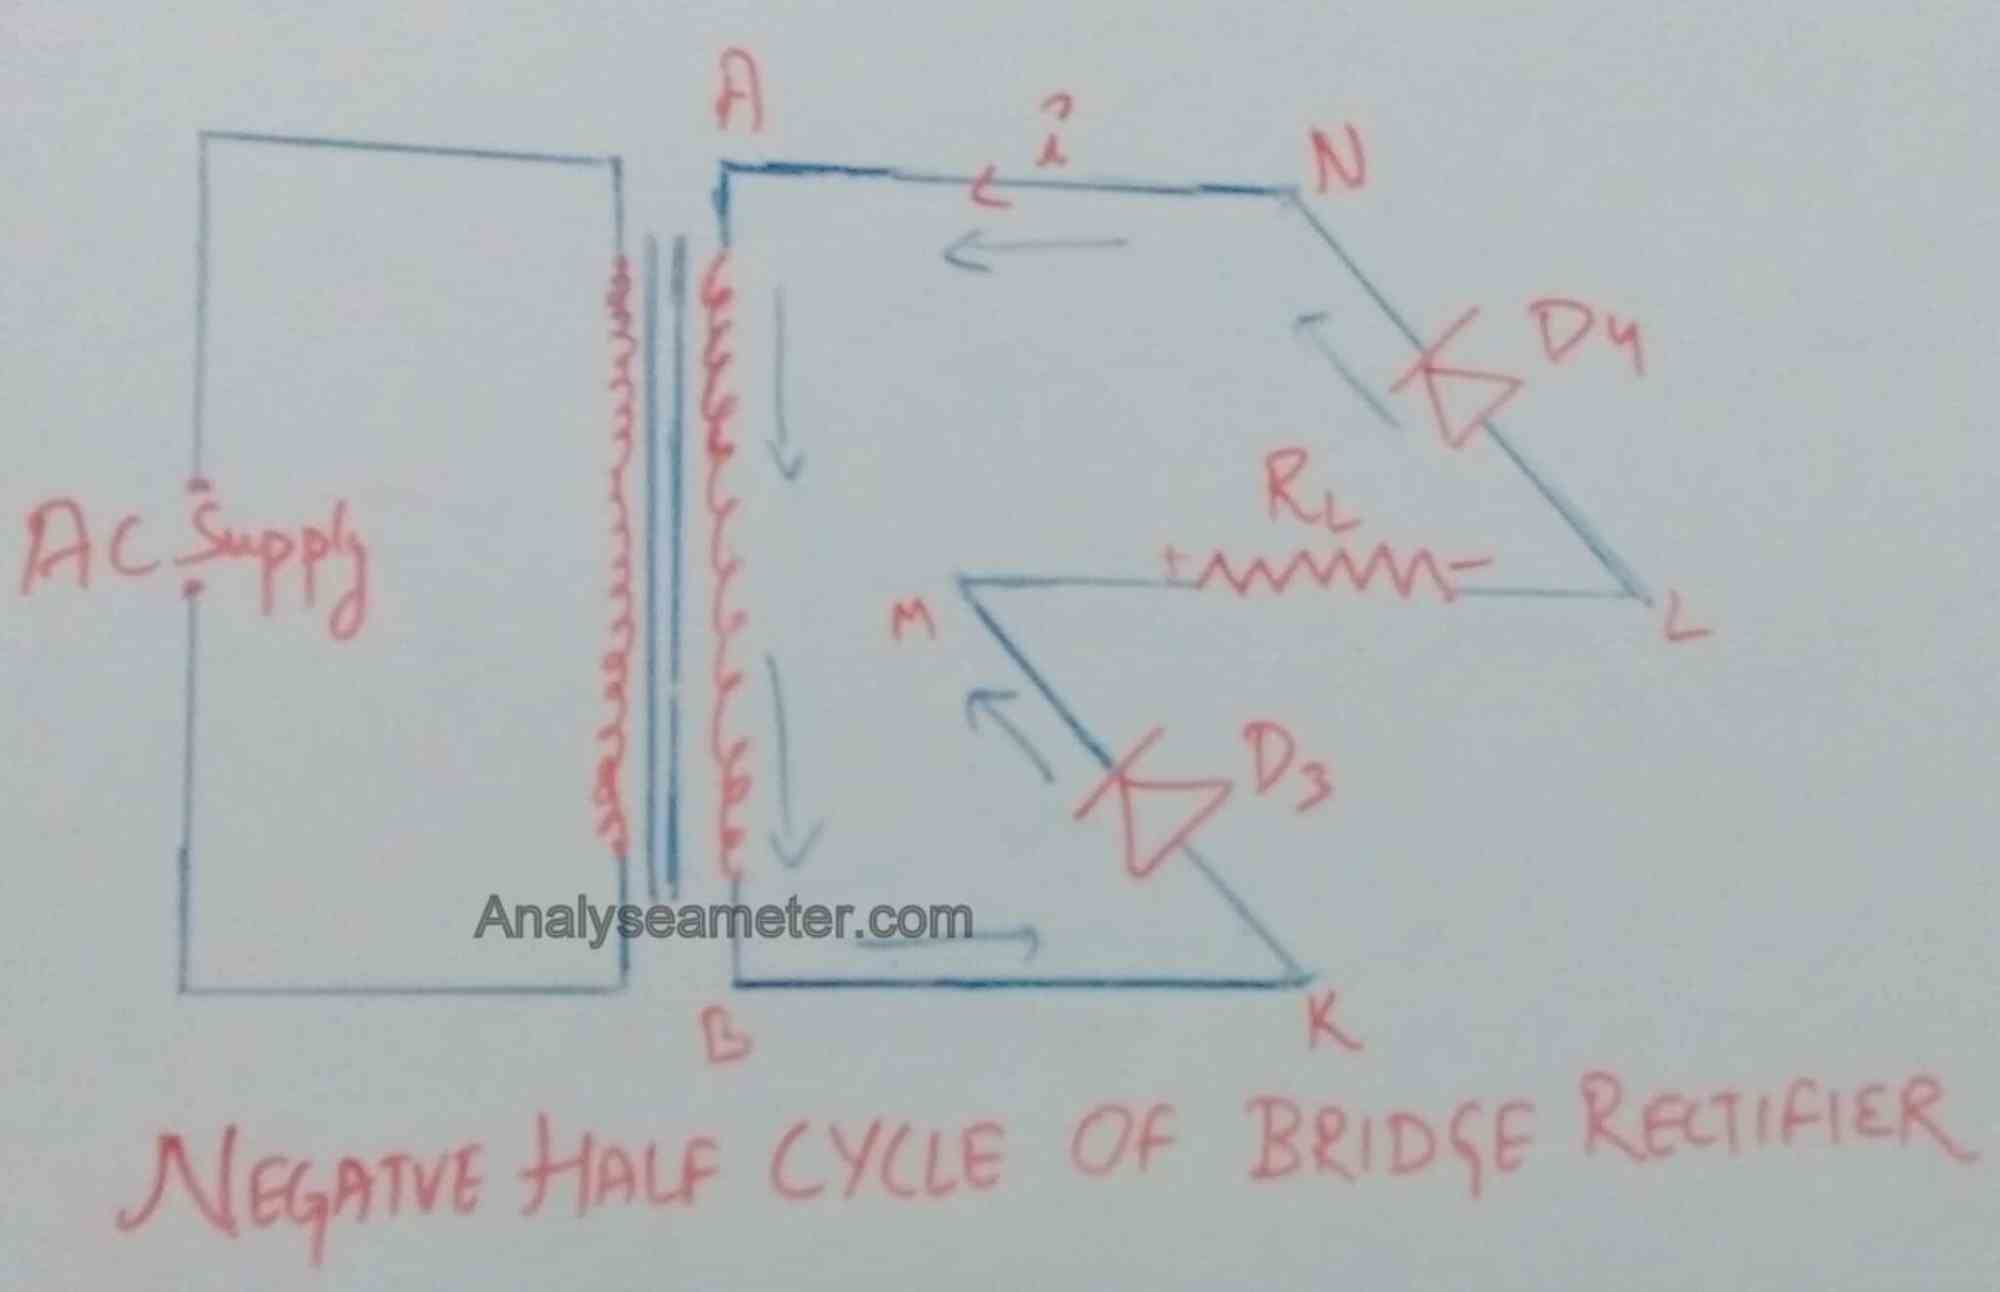 hight resolution of during the negative half cycle of the input voltage the upper end of the transformer i e a is negative with respect to the lower end of the transformer